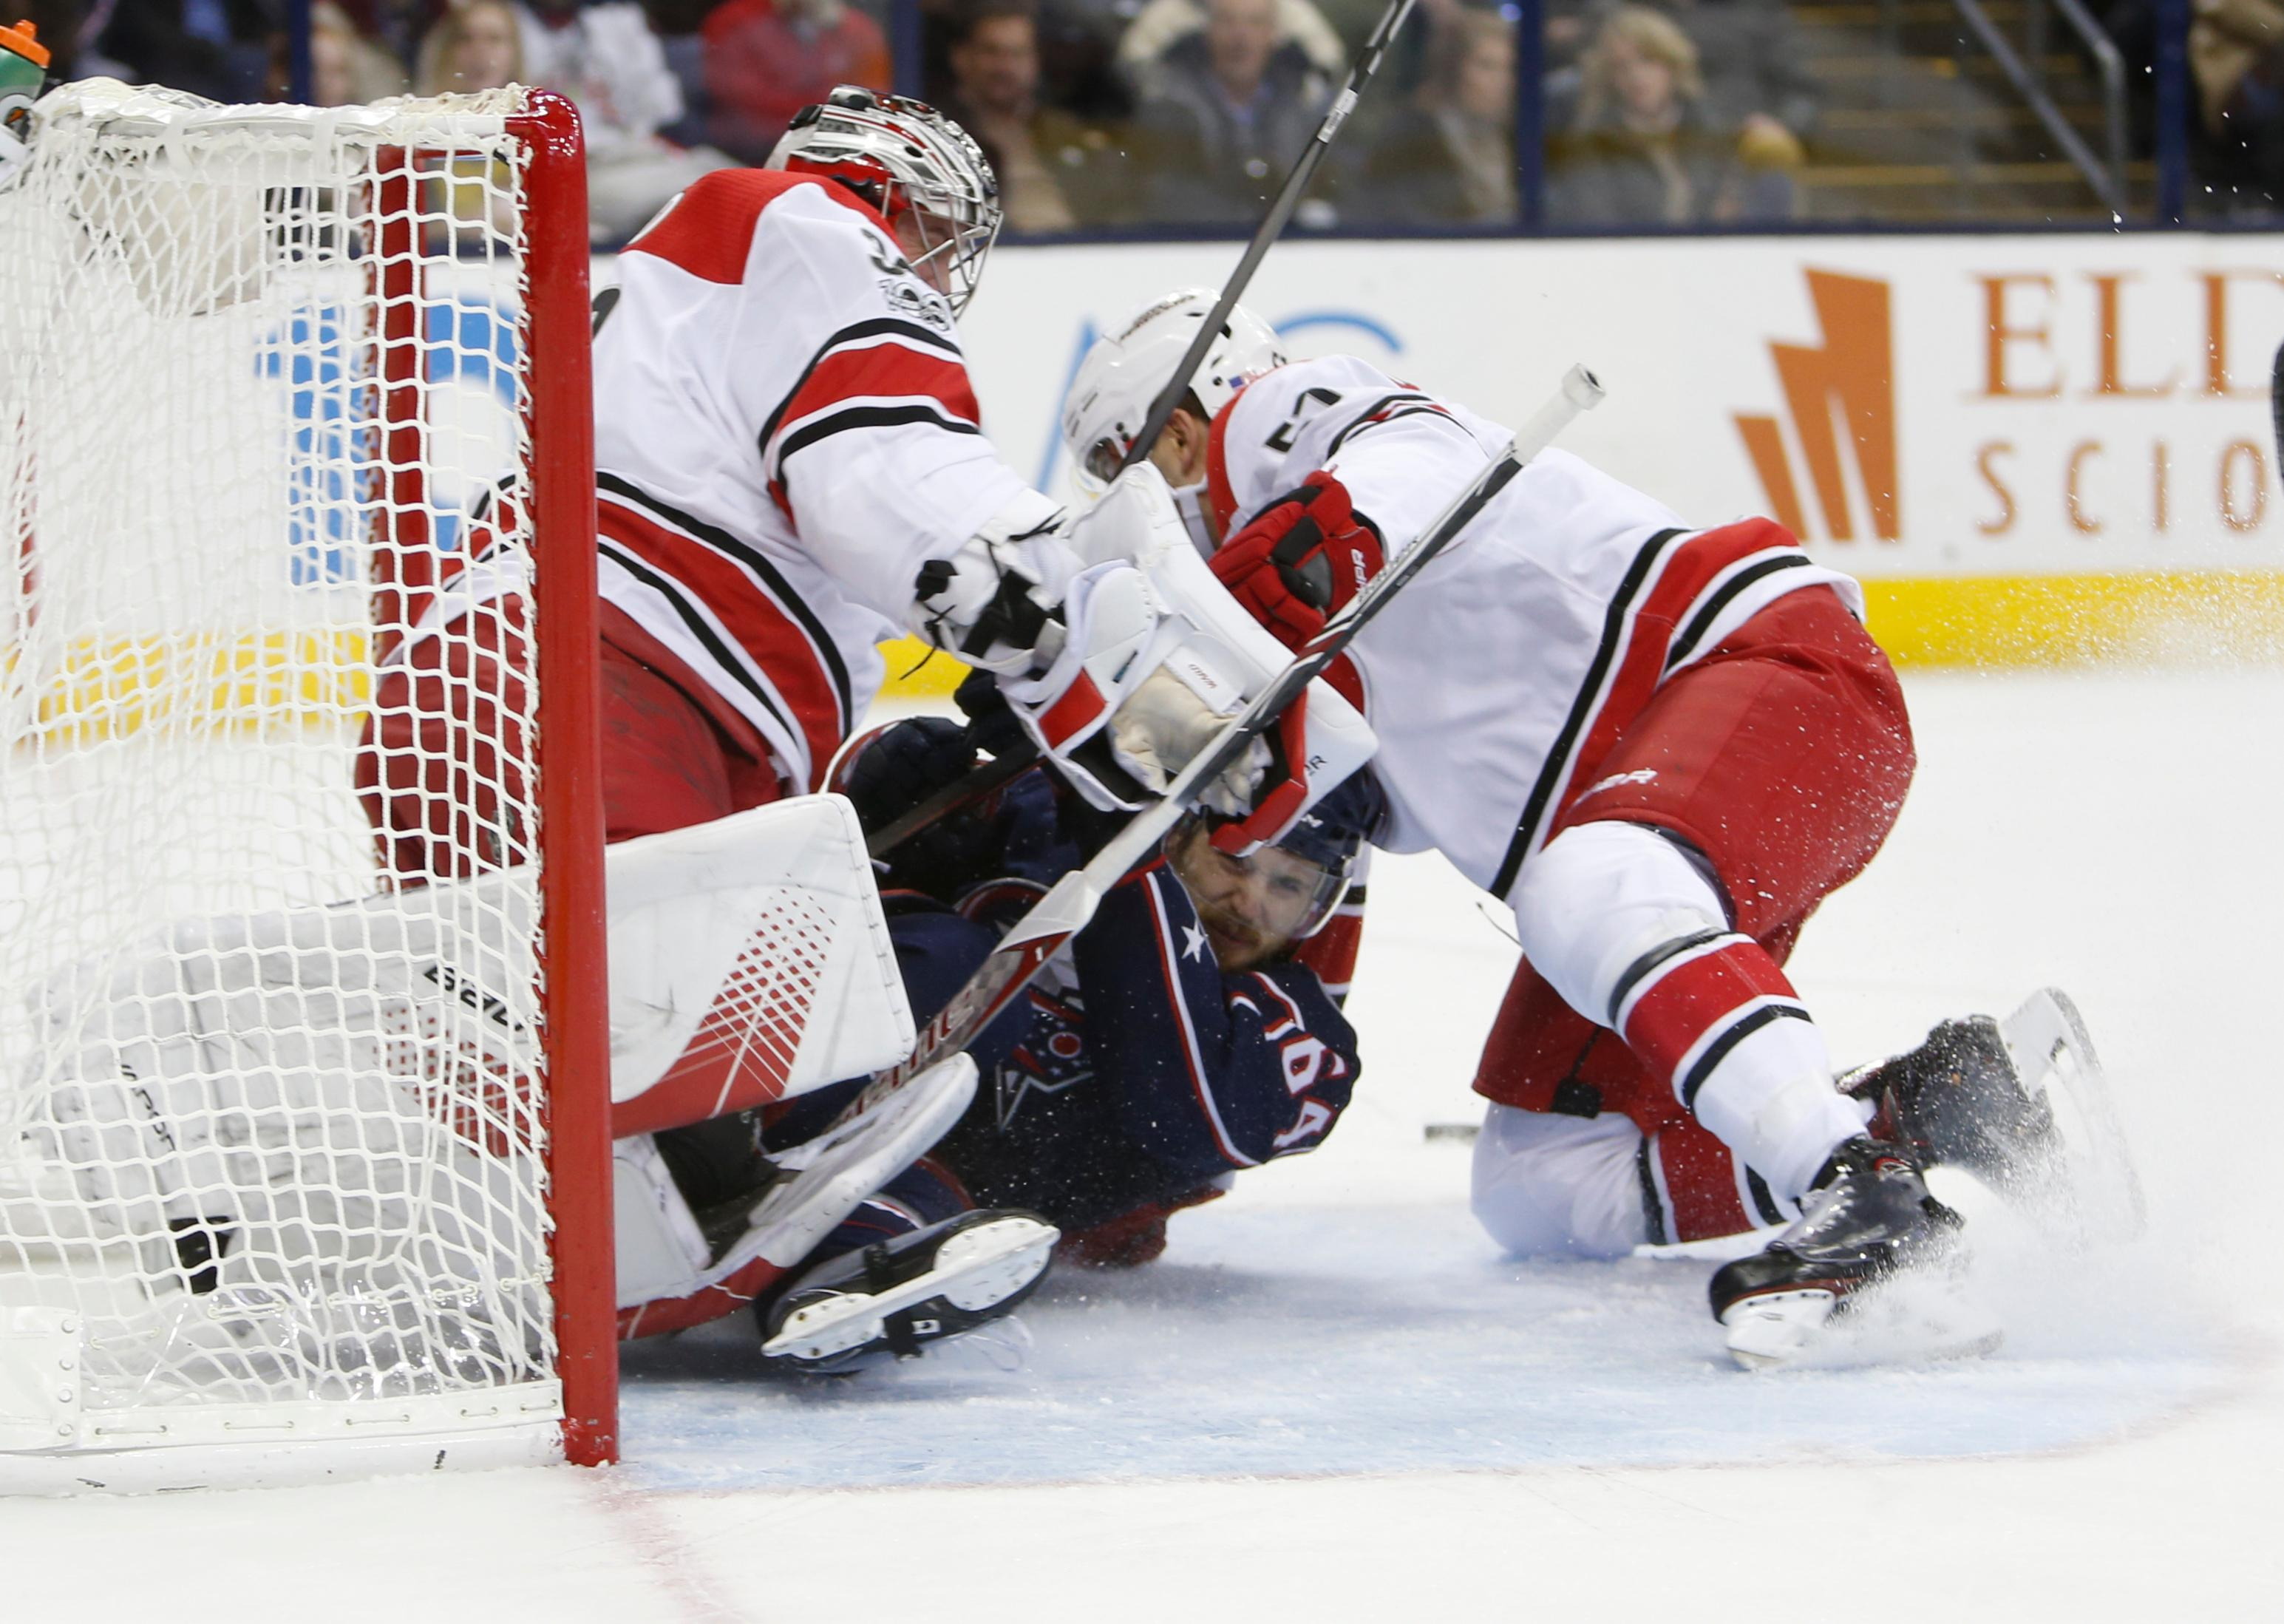 Carolina Hurricanes' Trevor van Riemsdyk, right, holds Columbus Blue Jackets' Tyler Motte as they collide with goaltender Cam Ward during the second period of an NHL hockey game Friday, Nov. 10, 2017, in Columbus, Ohio. van Riemsdyk was penalized on the play. (AP Photo/Jay LaPrete)